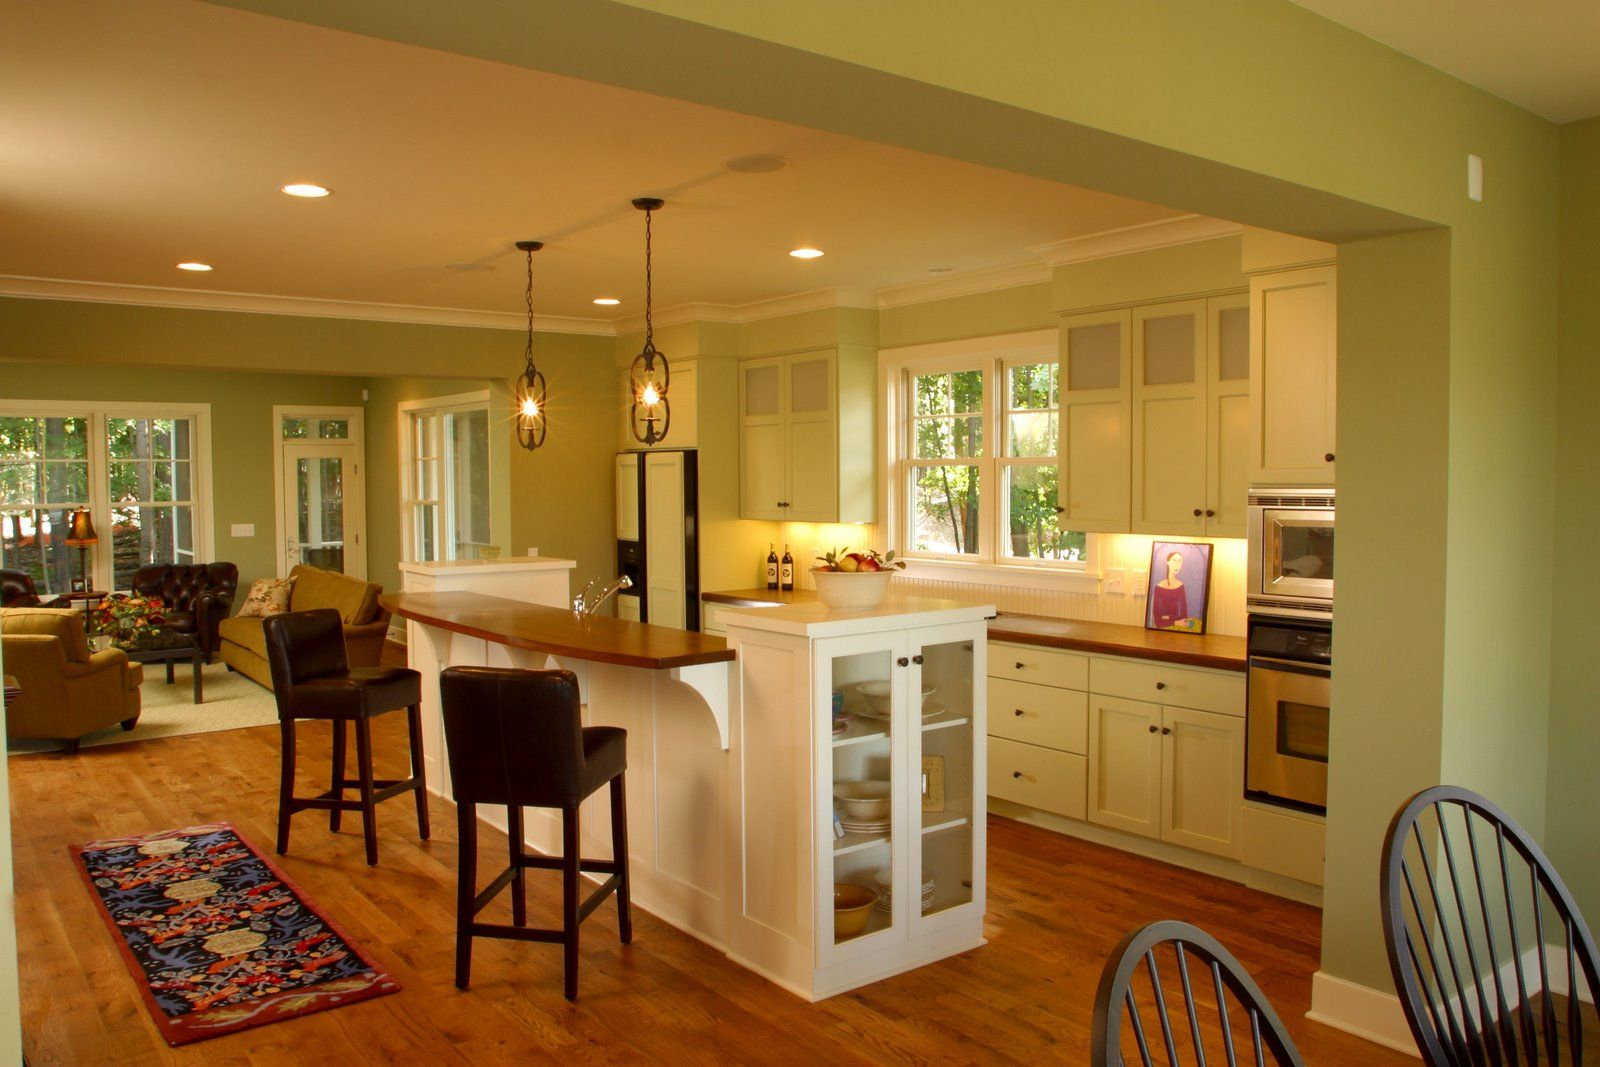 interior design for living room and kitchen - 1000+ images about small kitchen & dinning room on Pinterest wo ...